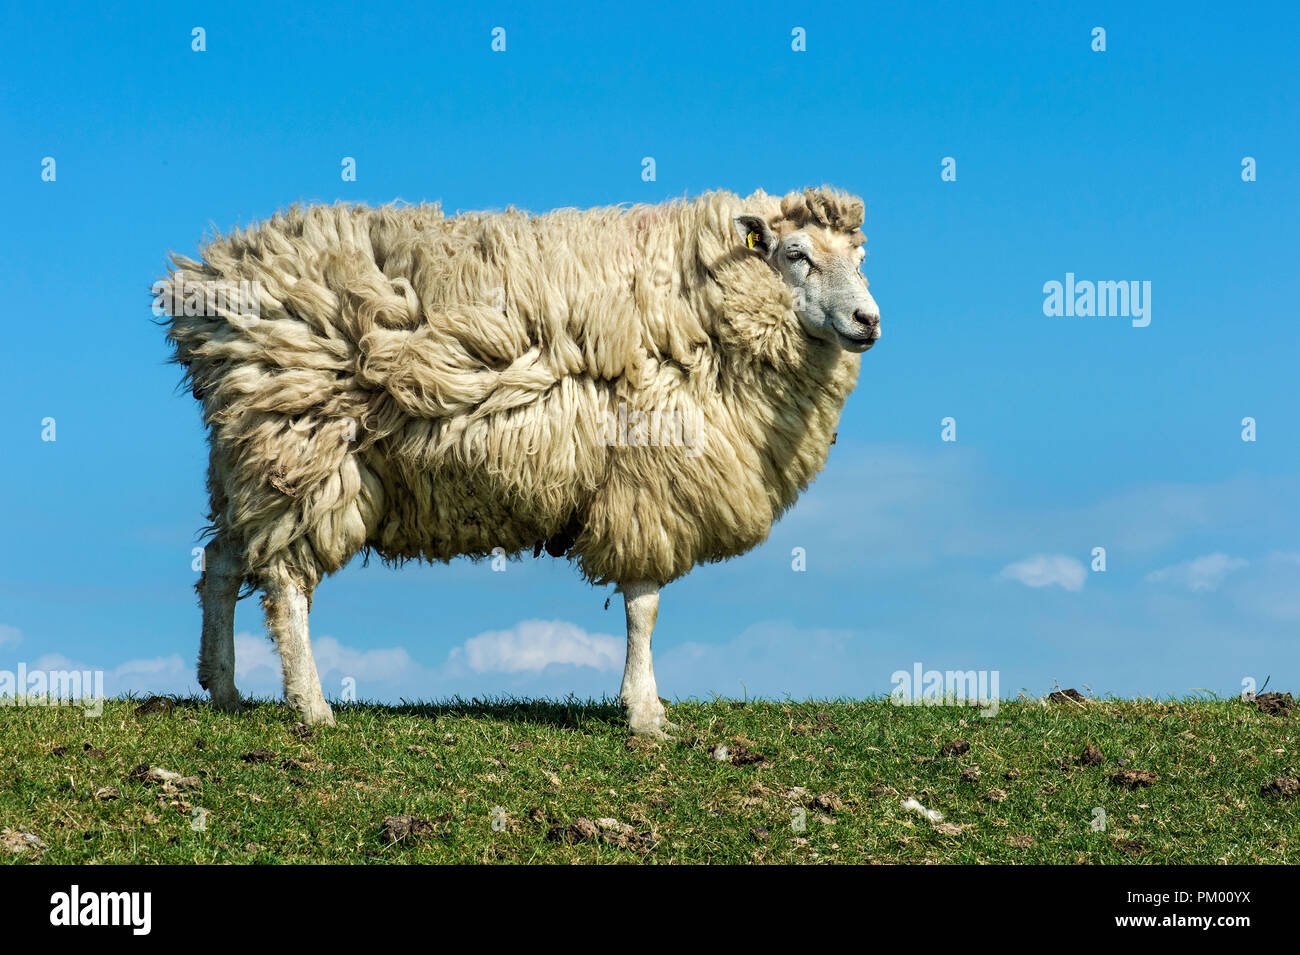 Texel sheep against blue sky, marshland at the North Sea coast, Schleswig-Holstein, Germany - Stock Image